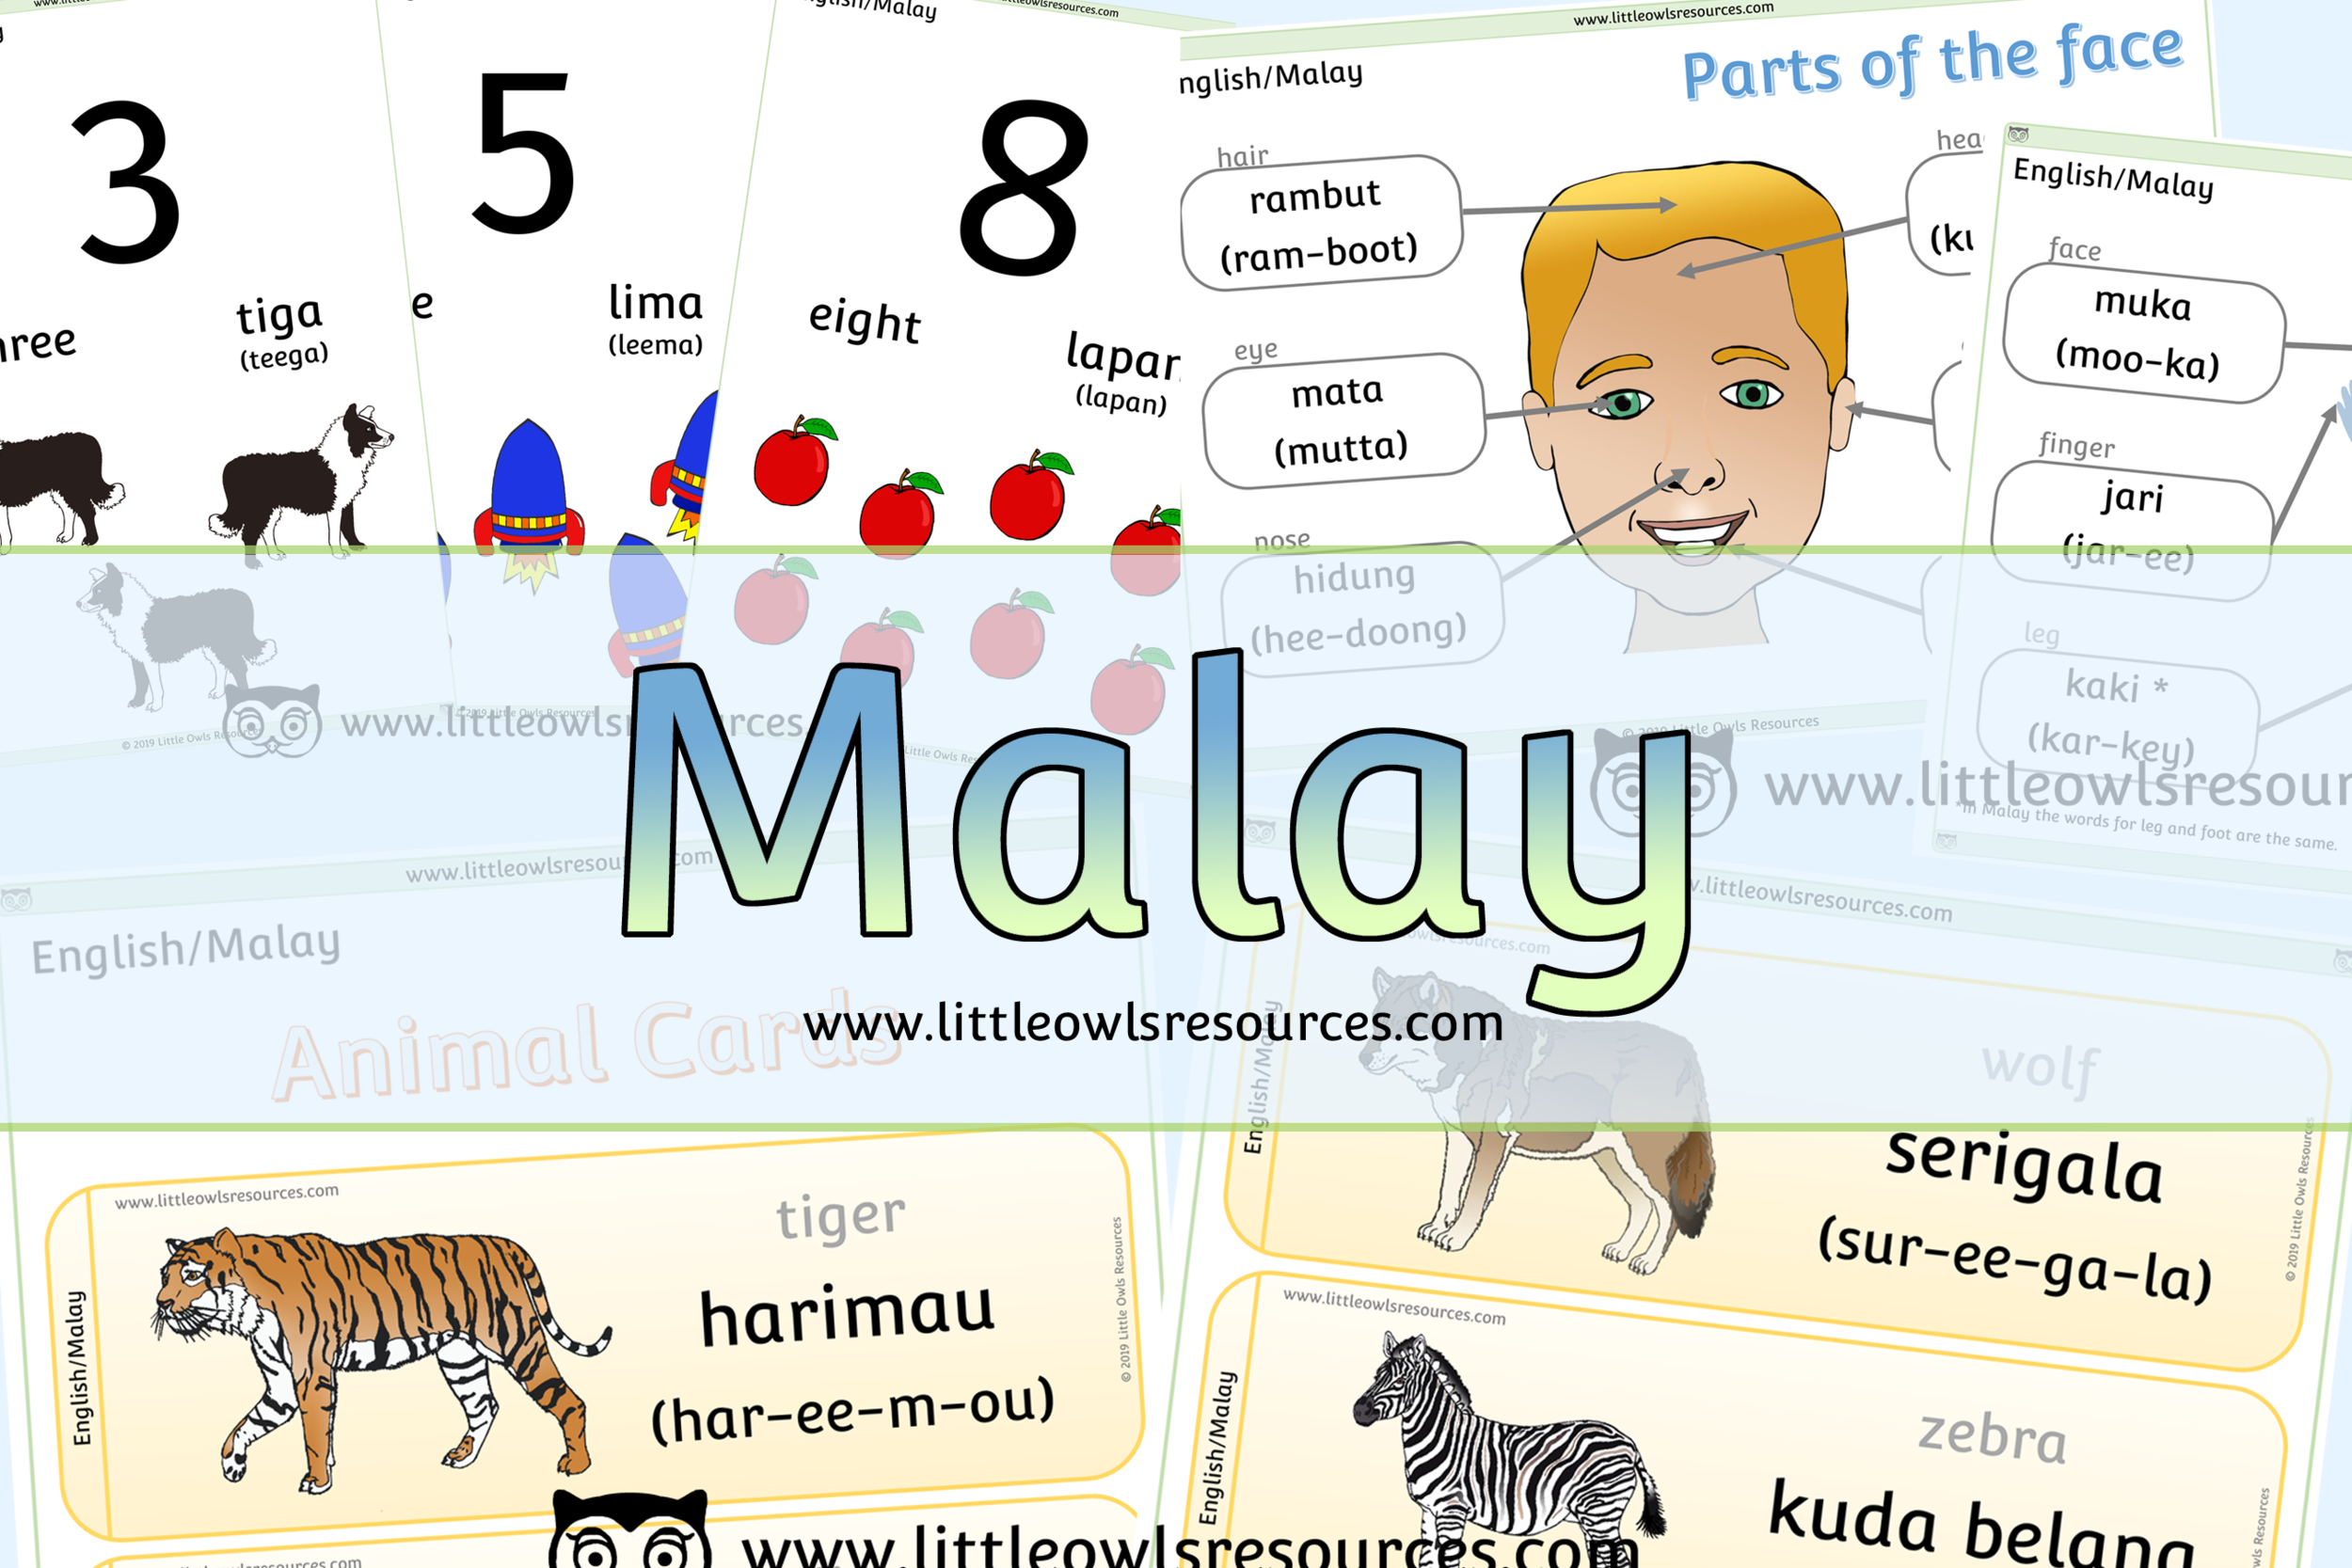 Malay/English Dual Language Resources